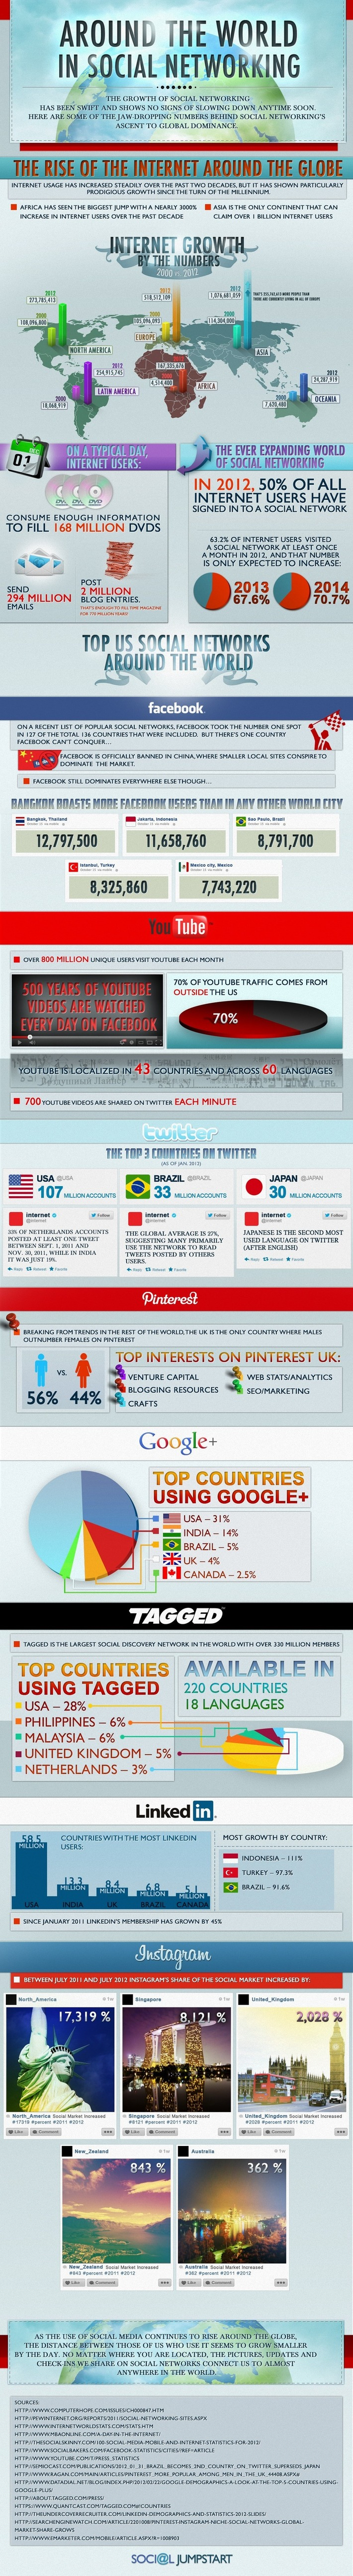 Social Networking Around the World | A Marketing Mix | Scoop.it